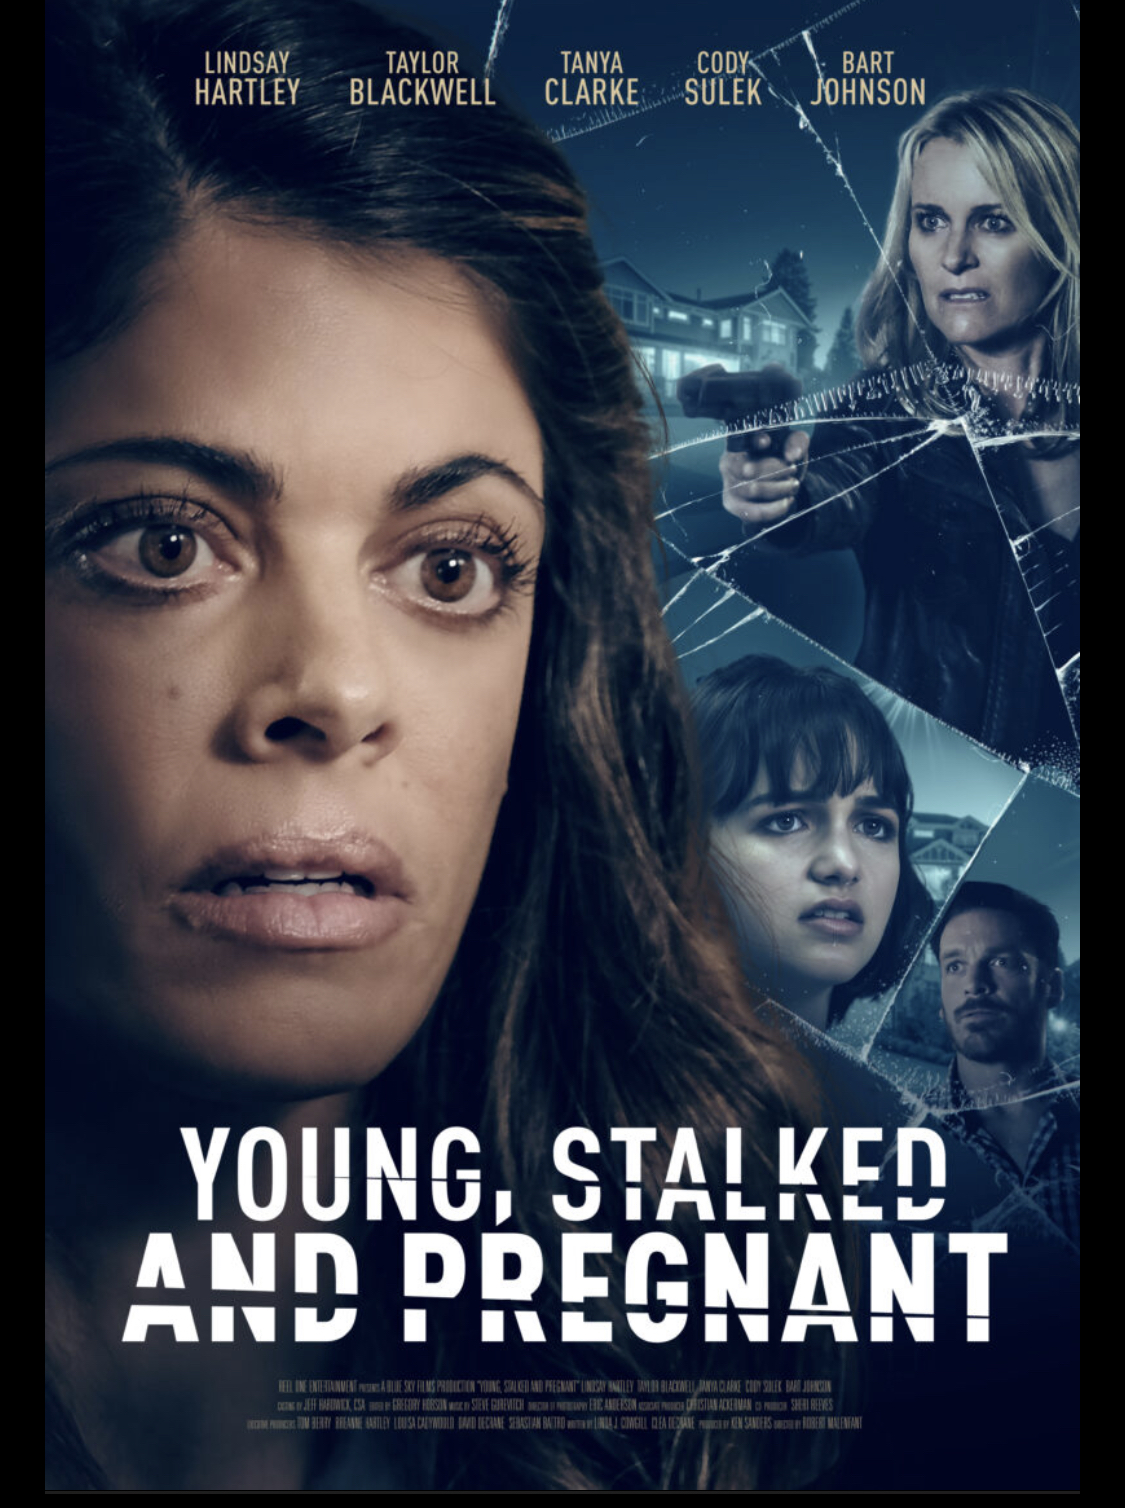 Watch Movie Young, Stalked, and Pregnant